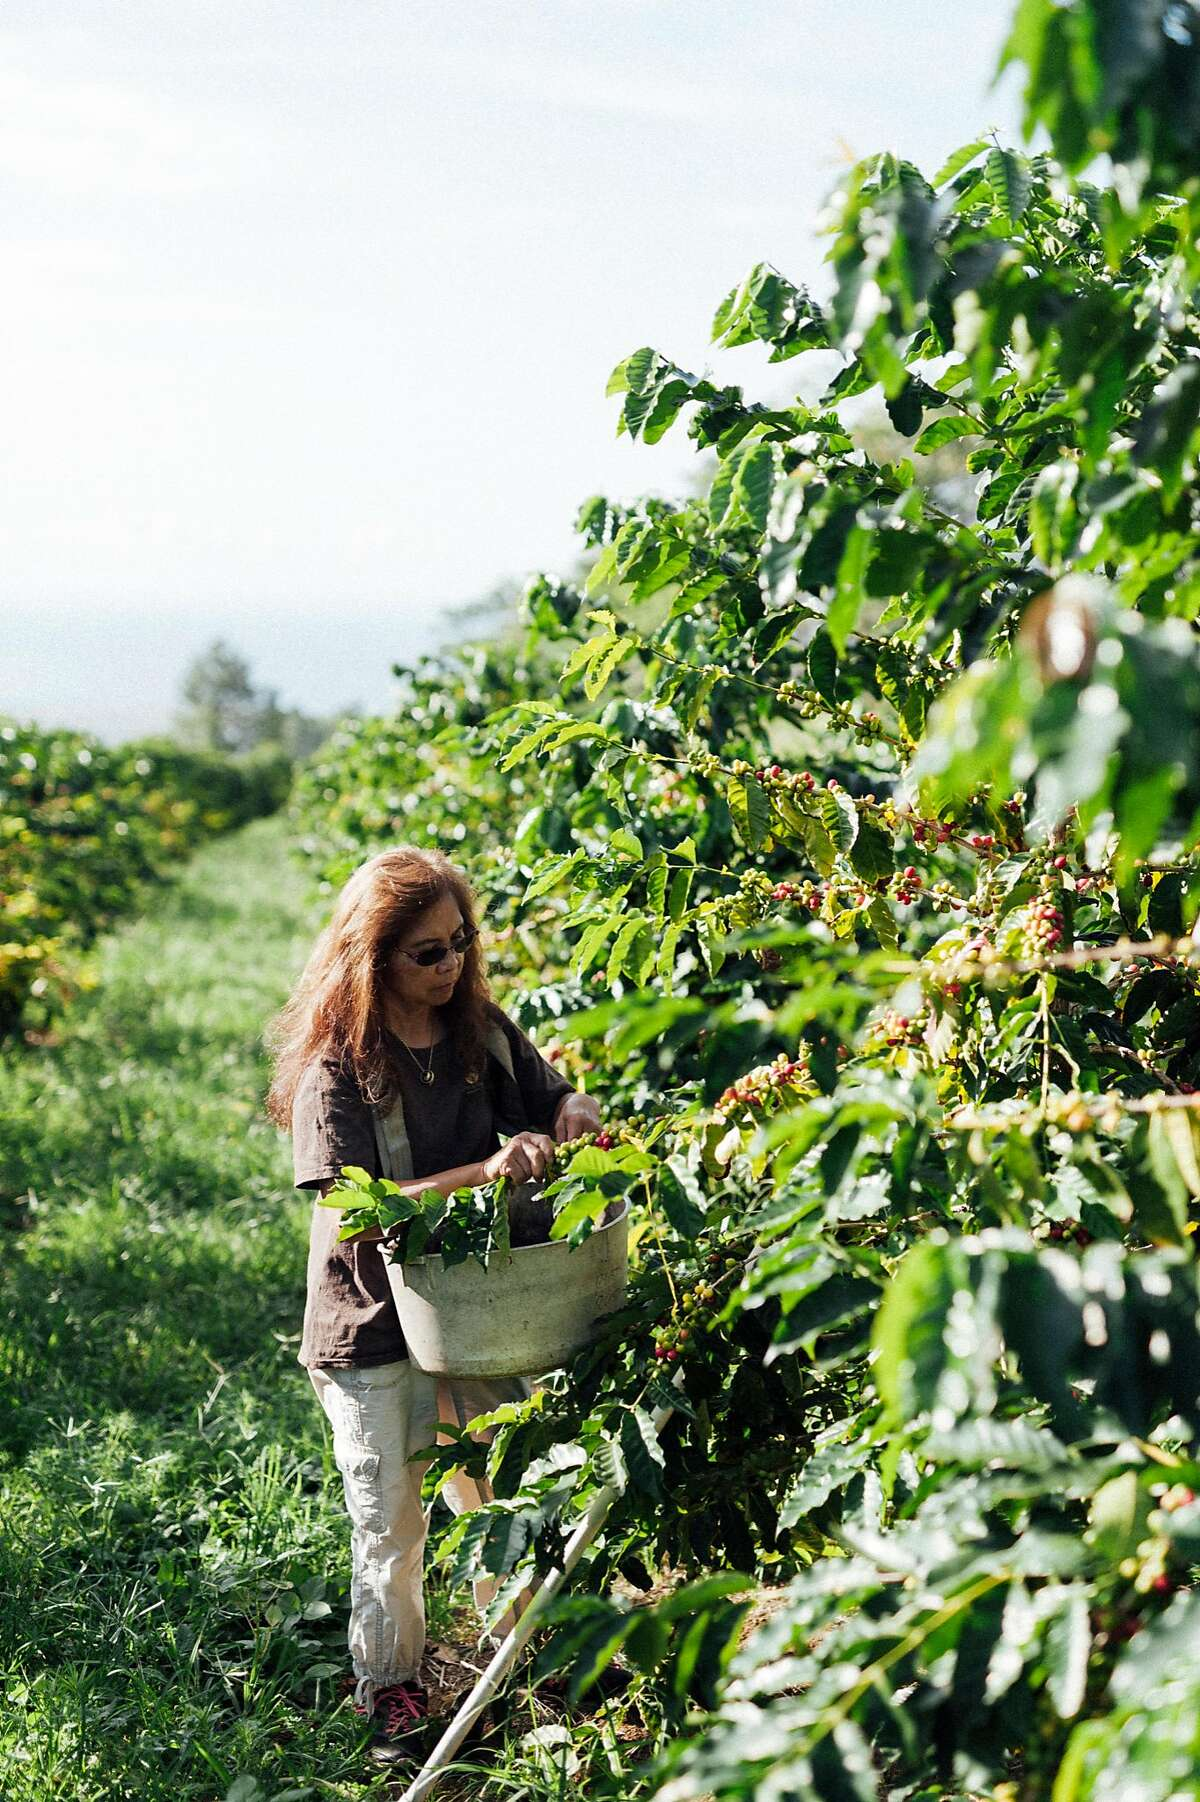 Lorie Obra hand picks coffee cherries on her Ka�u farm on the island of Hawai�i. Obra founded Rusty�s Hawaiian Coffee with her late husband. The brand is known for natural processing.